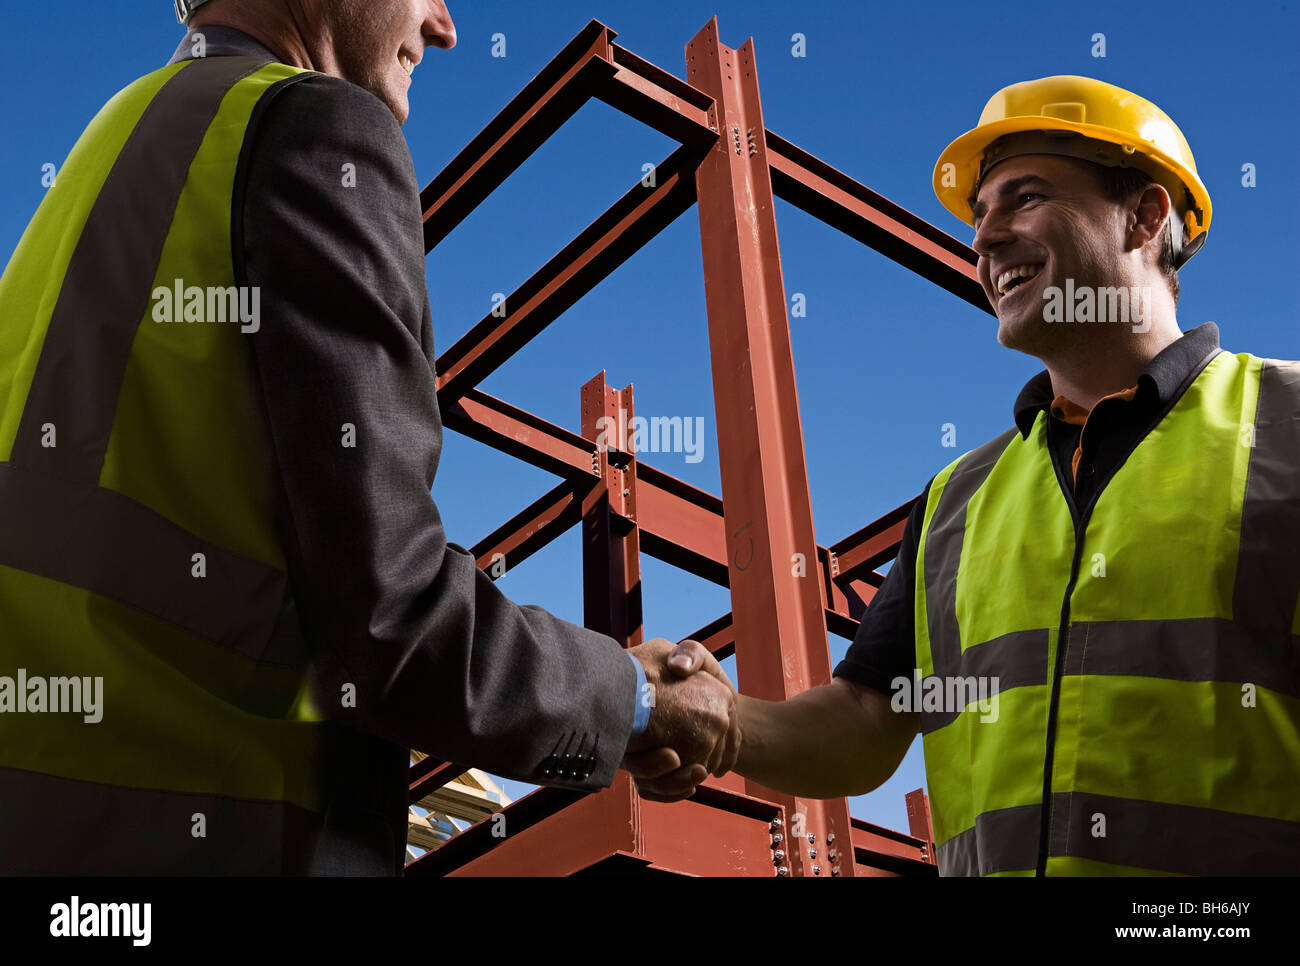 Agreement at construction site - Stock Image